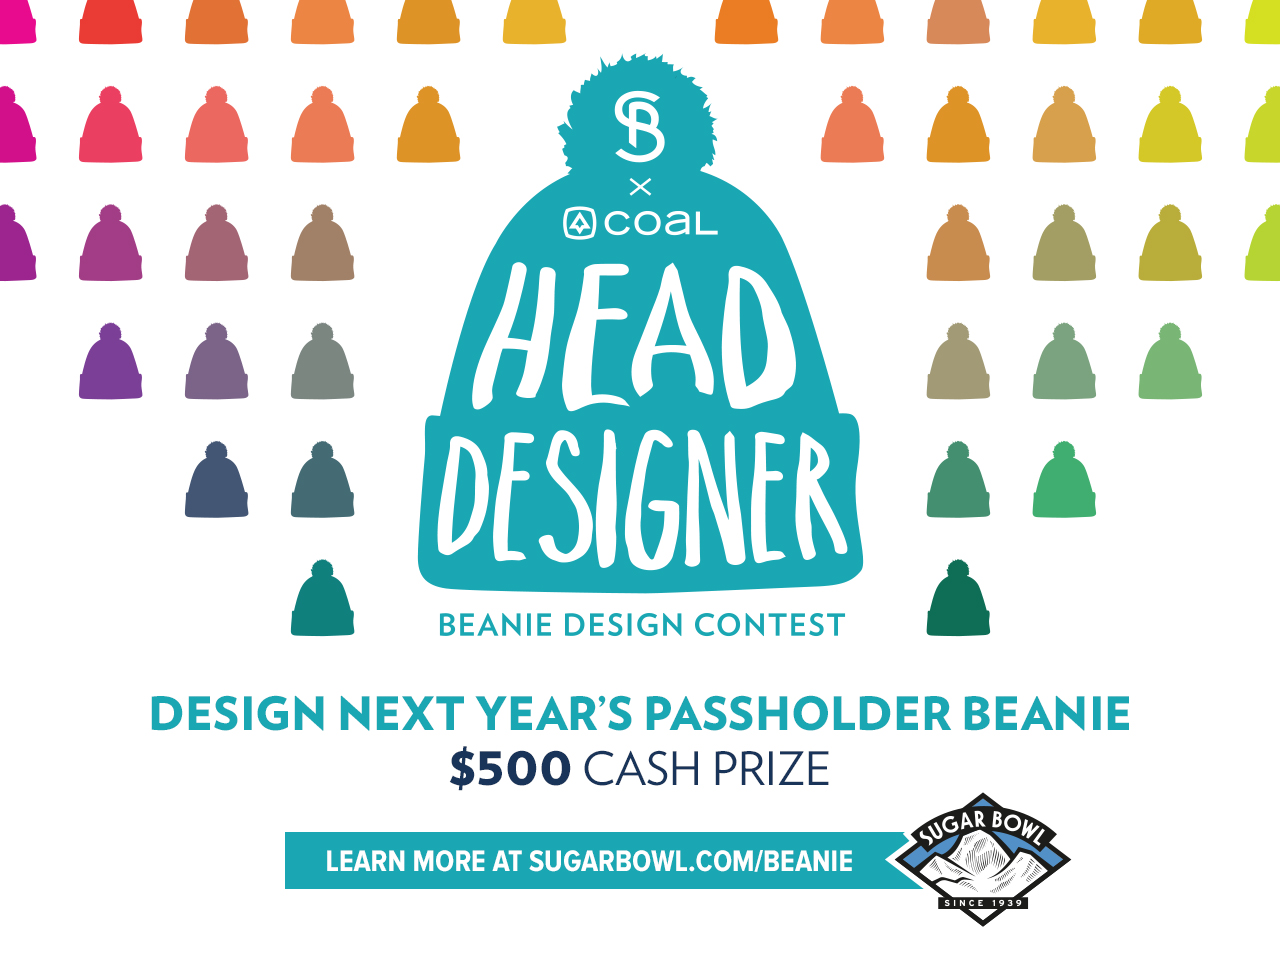 Sugar Bowl x Coal: Head Designer, Beanie Design Contest